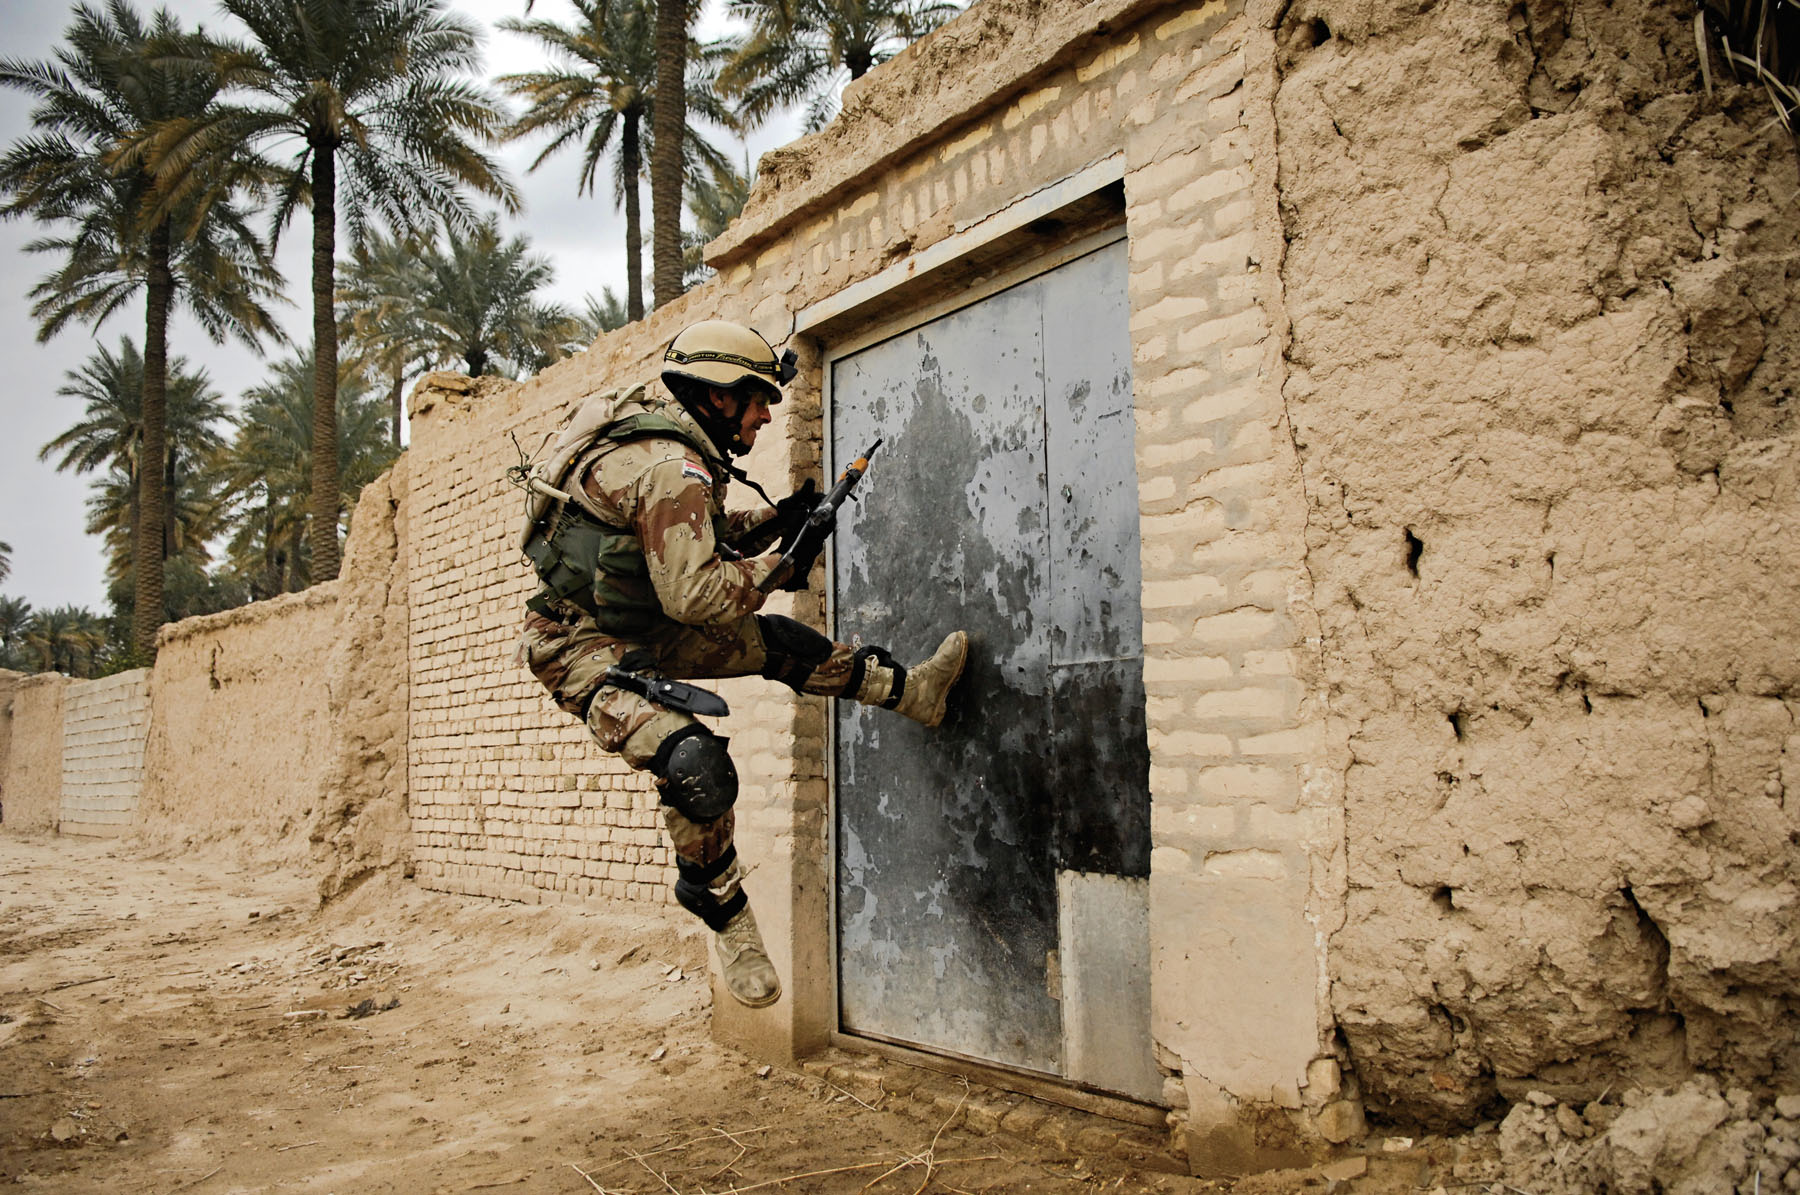 Operation Iraqi Freedom (Soldier kicking door), photo by: SPC Holley Baker